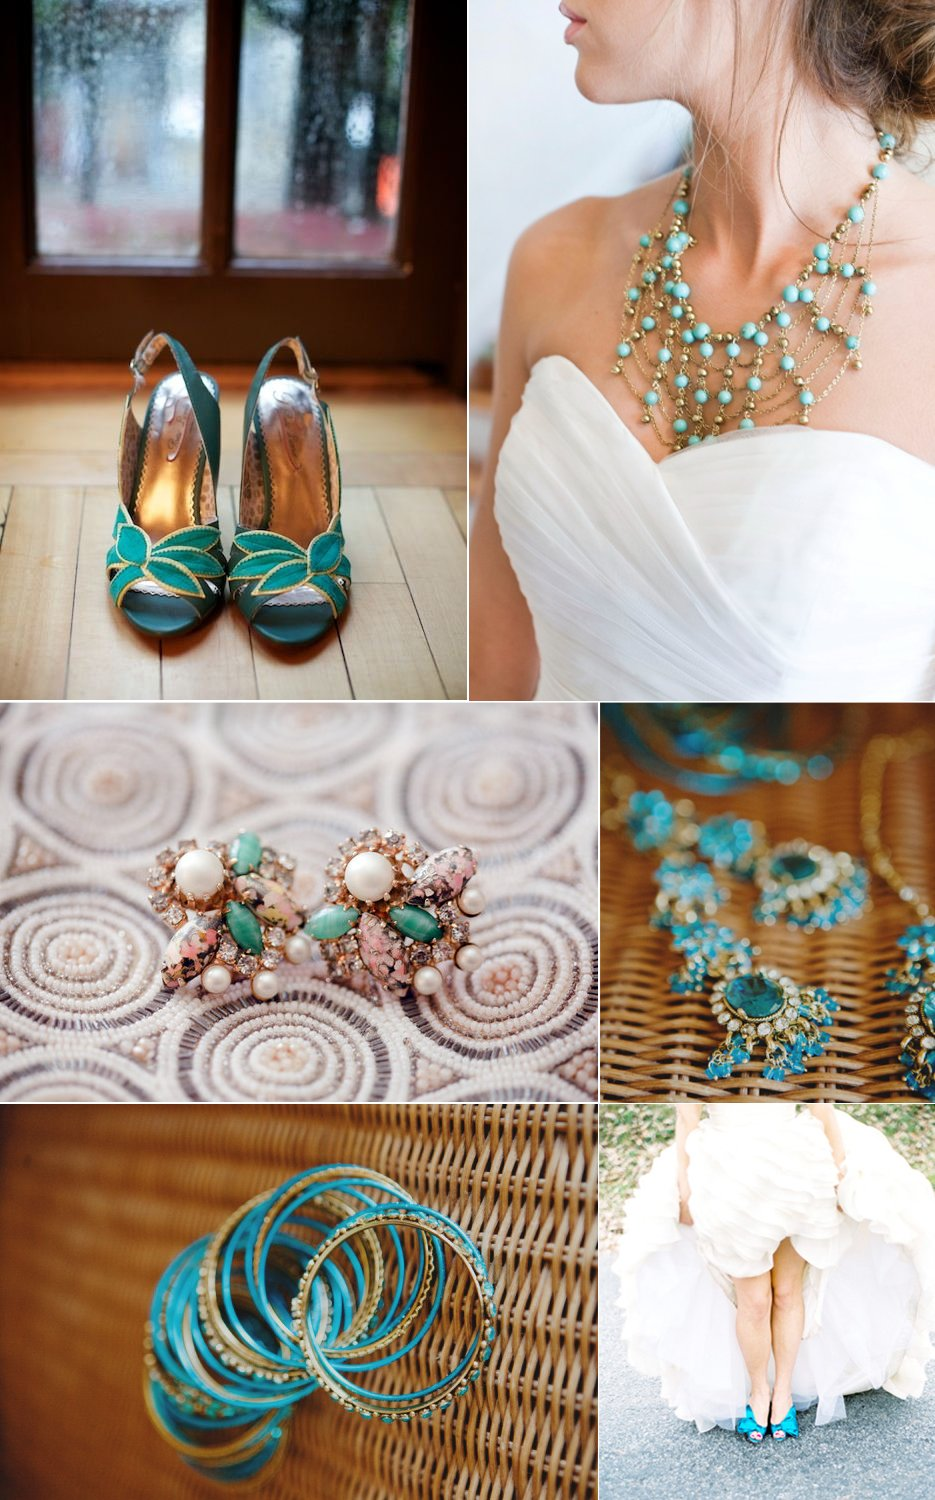 Brides-something-blue-turquoise-wedding-jewelry-bridal-heels.full